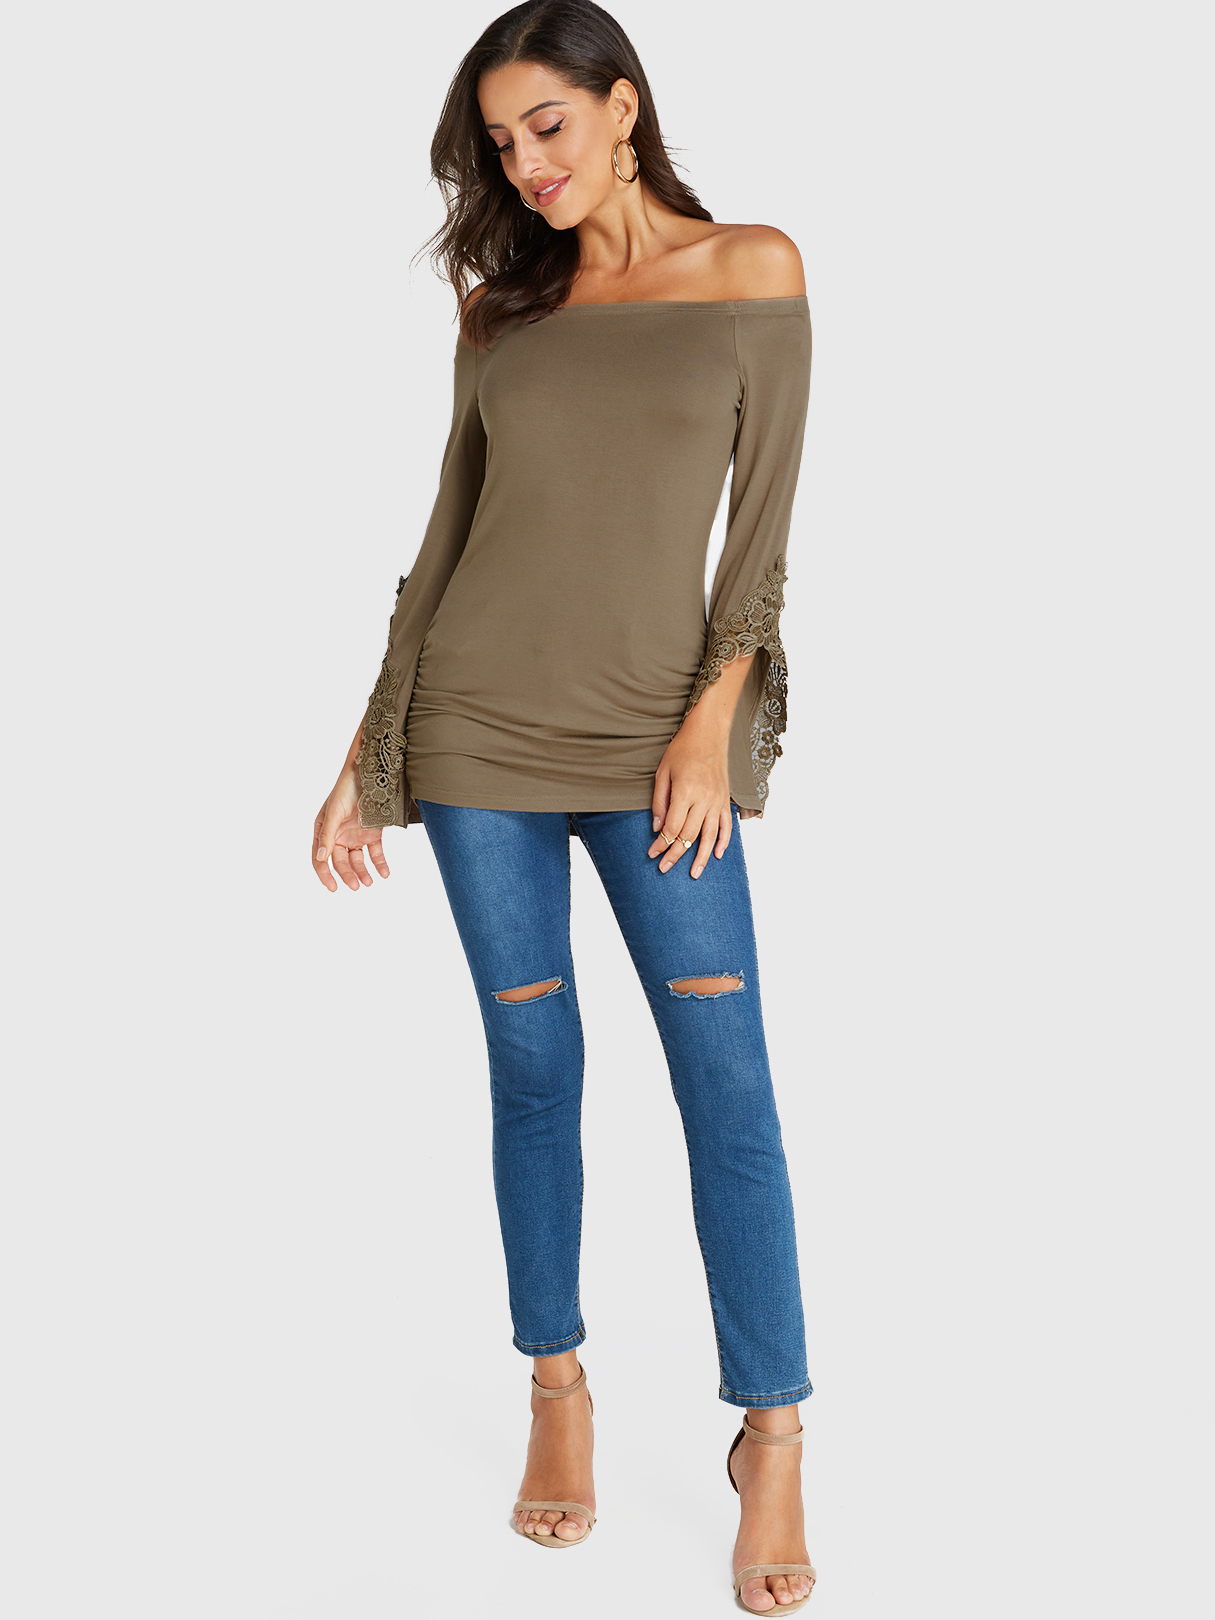 Khaki Lace Off The Shoulder Long Sleeves Top